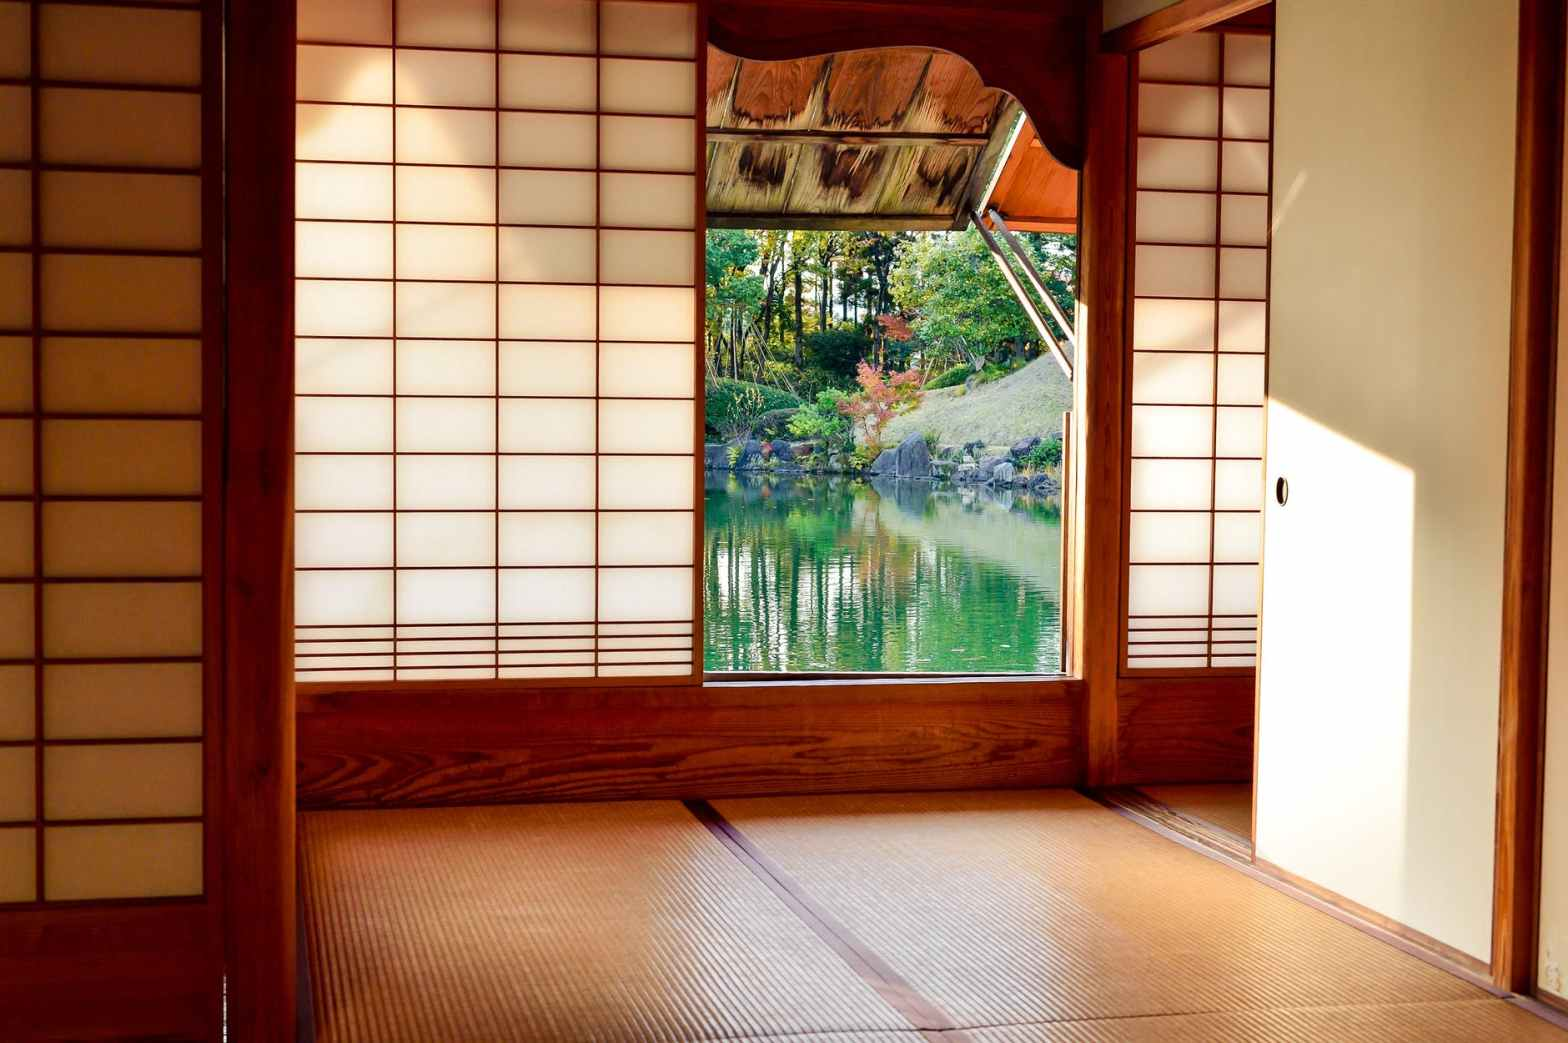 Travel: Ryoan-ji, Kyoto